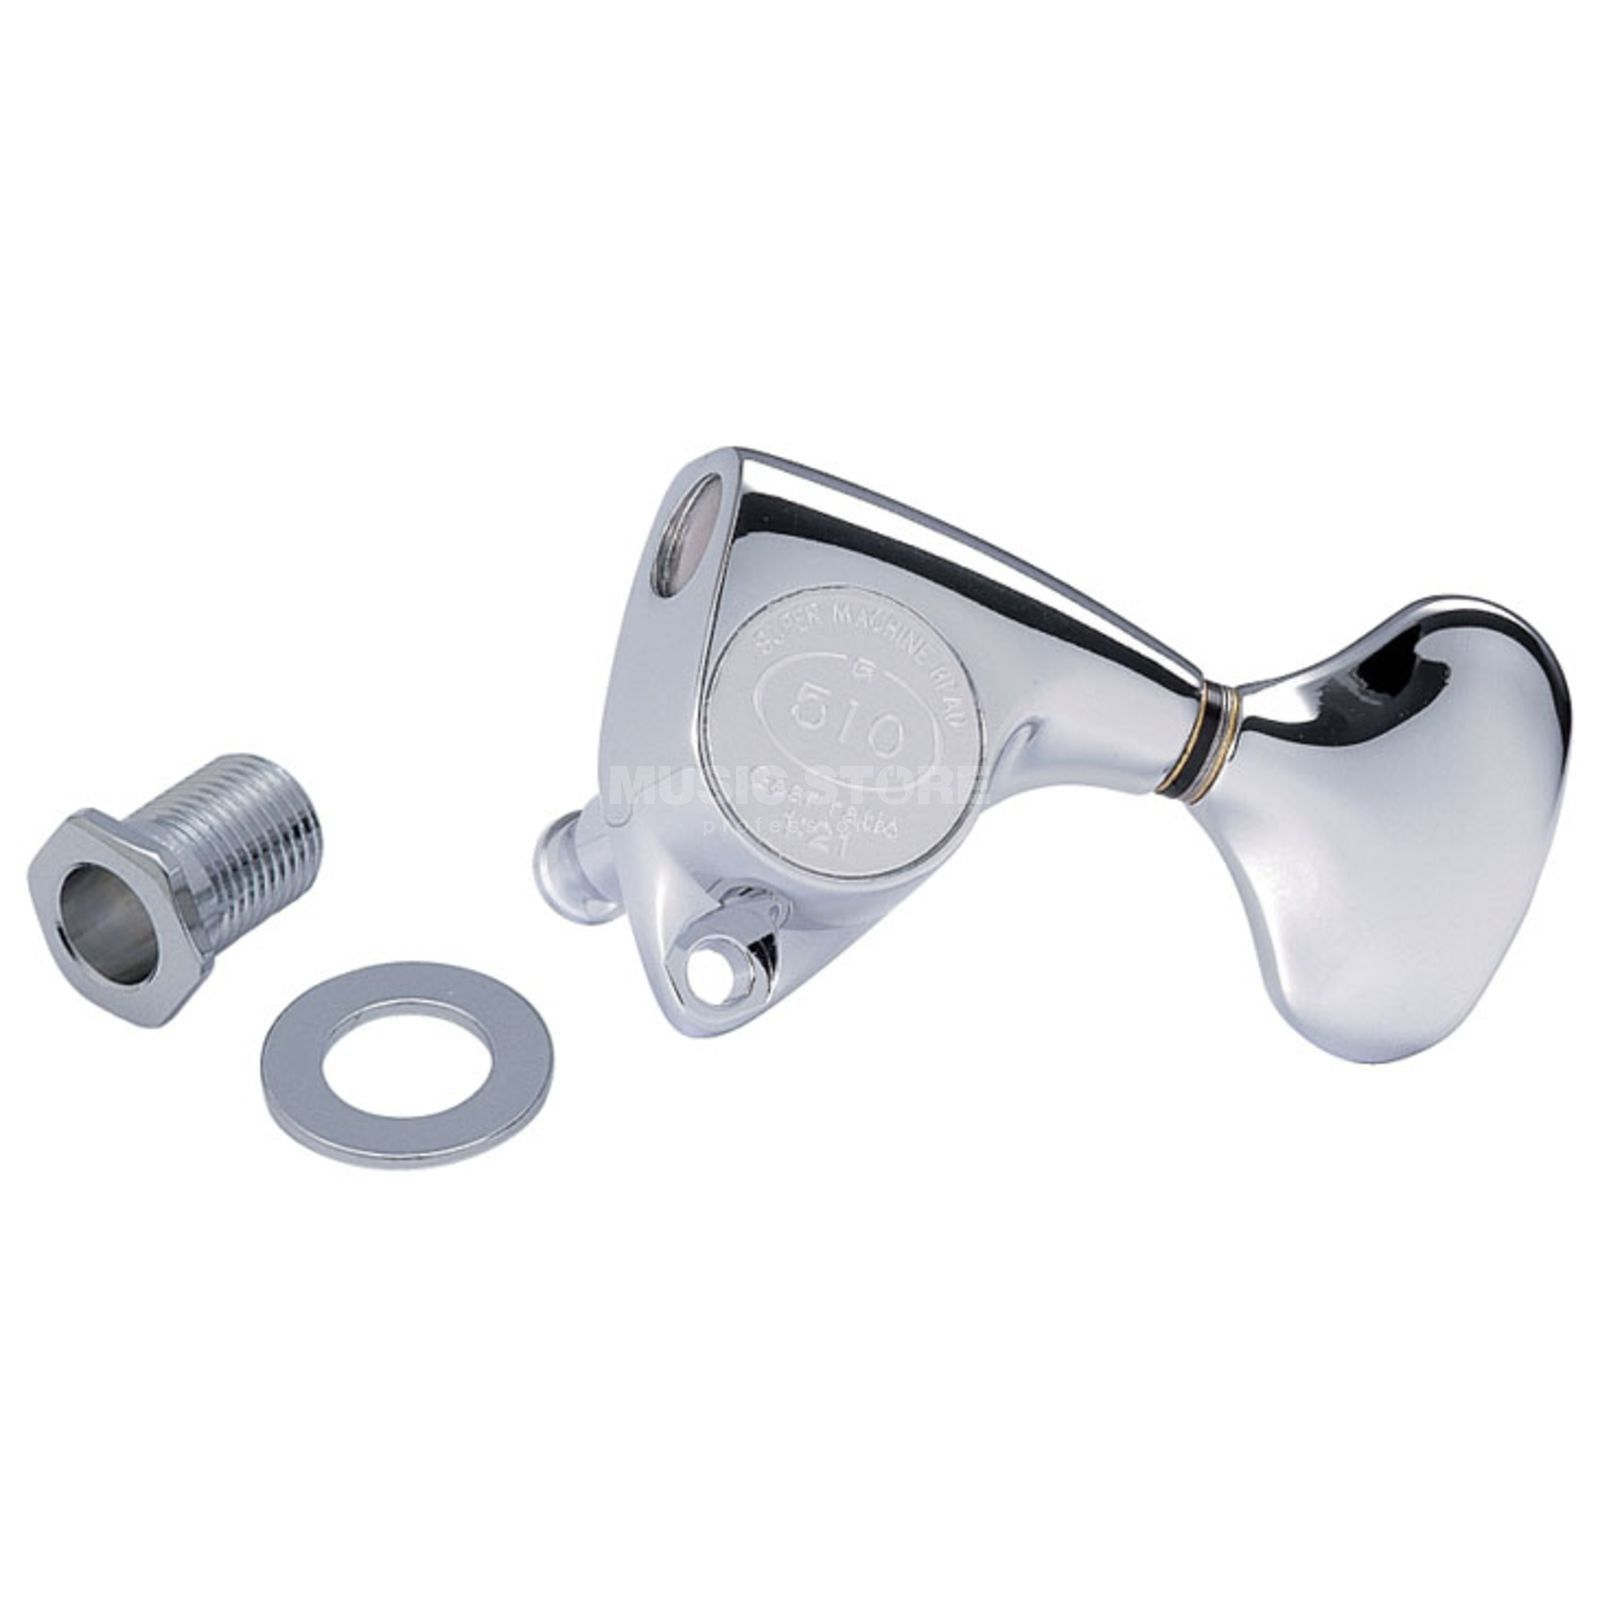 Gotoh SGV-510 Mechanik C 3L 3R L5 Button chrome Produktbild